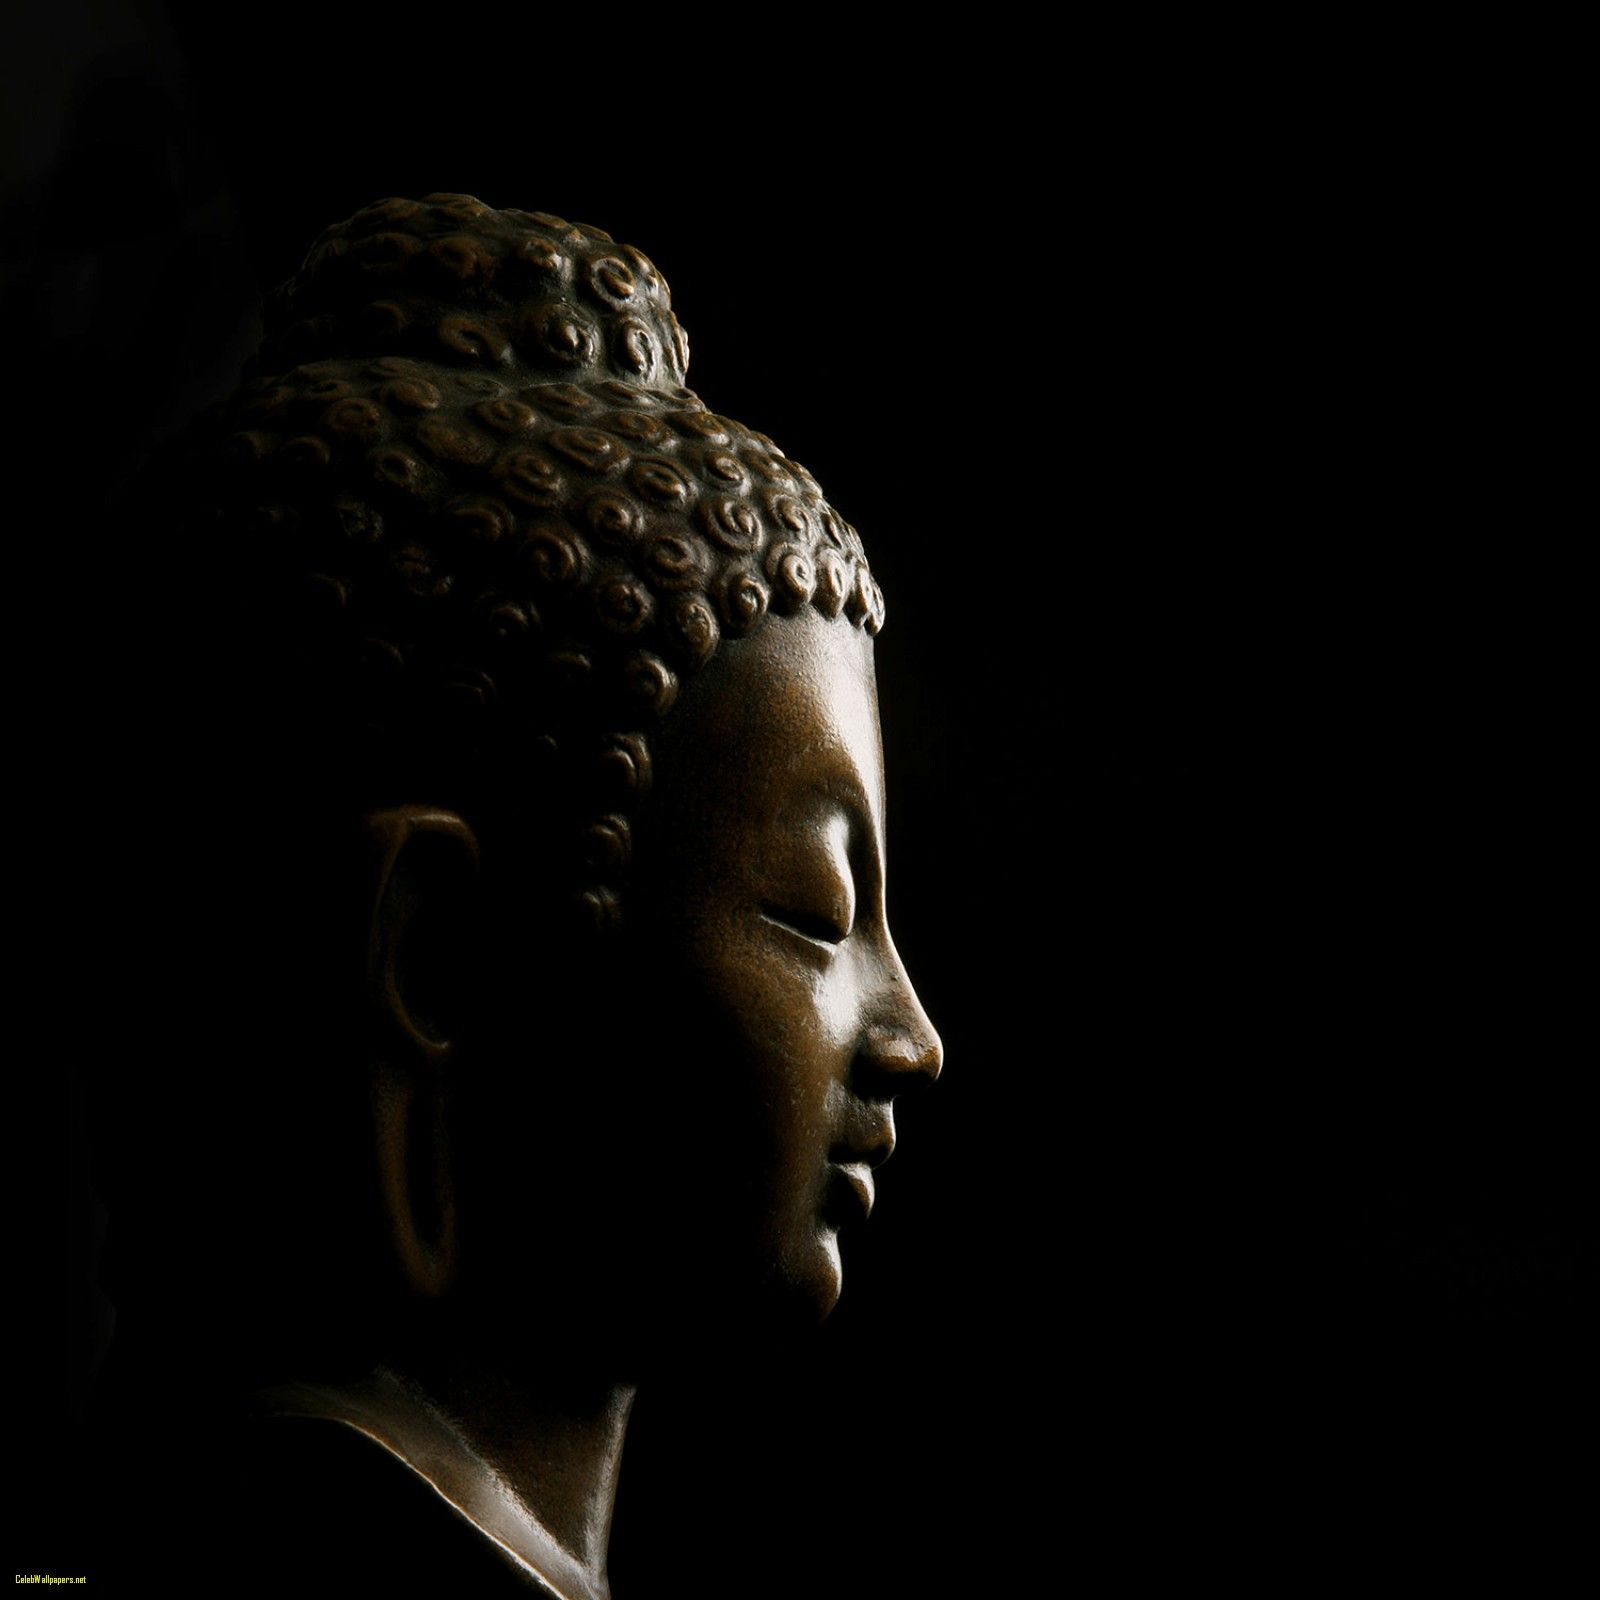 1600x1600 Buddha Wallpaper Buddha On Black Wallpaper for Decor | CelebsWallpaper